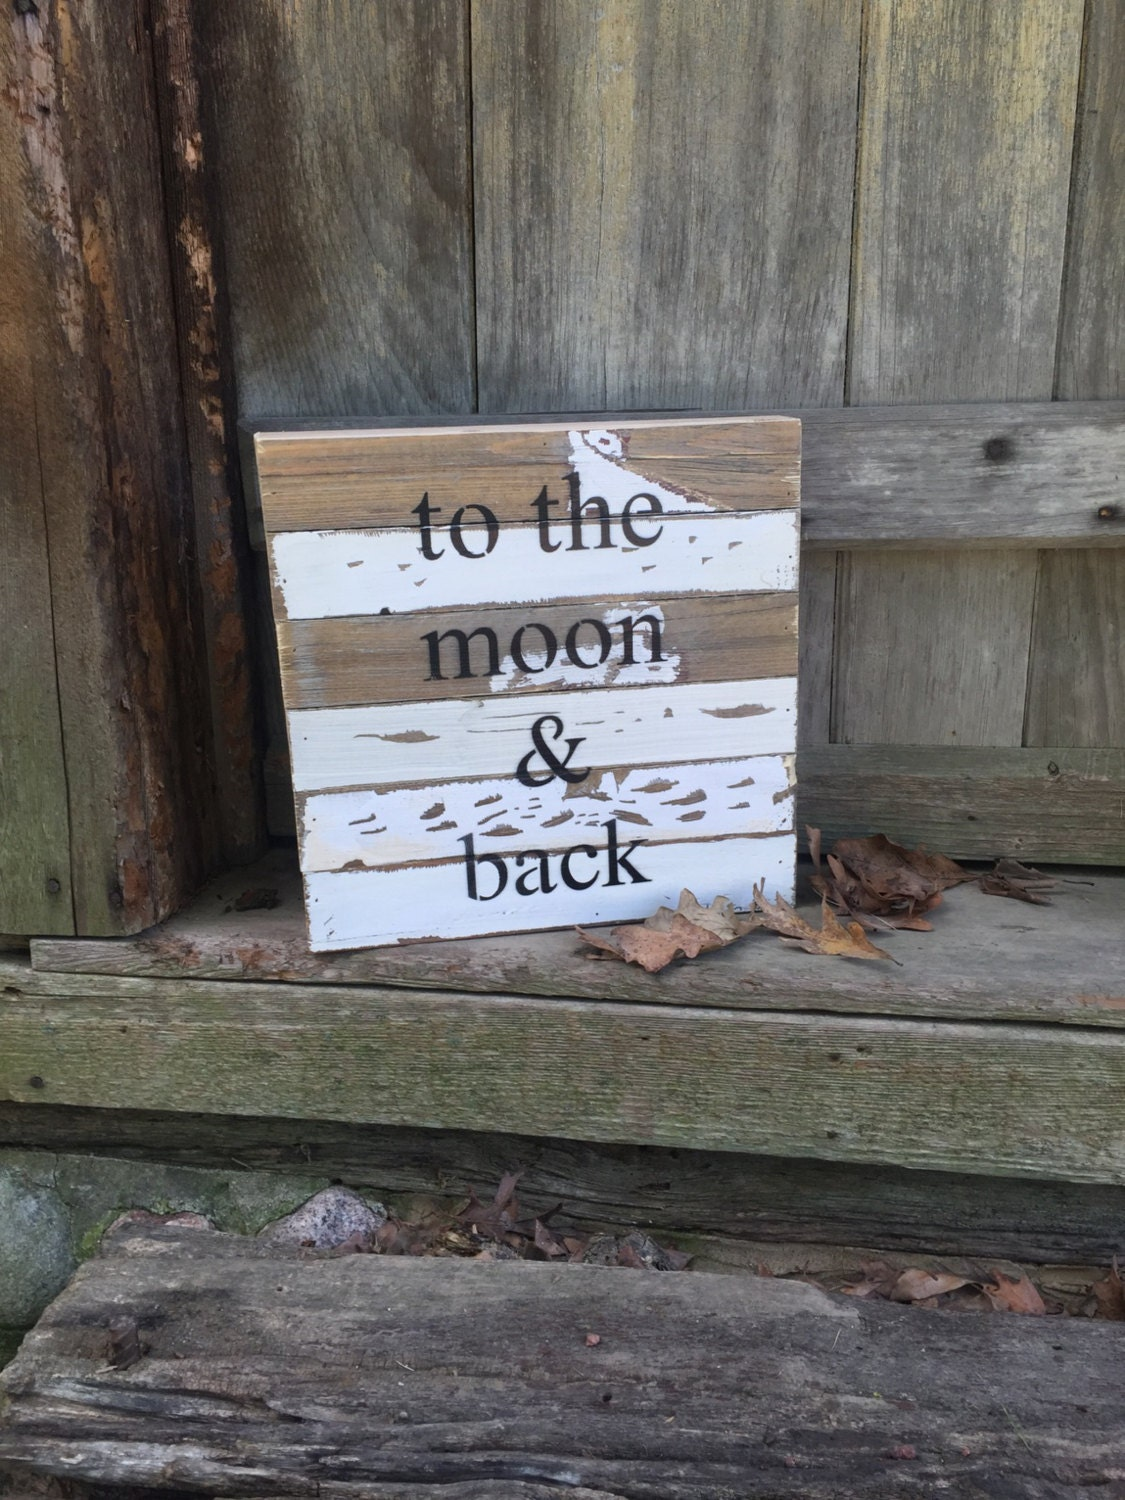 To The Moon And Back sign Wooden signs with quotes reclaim